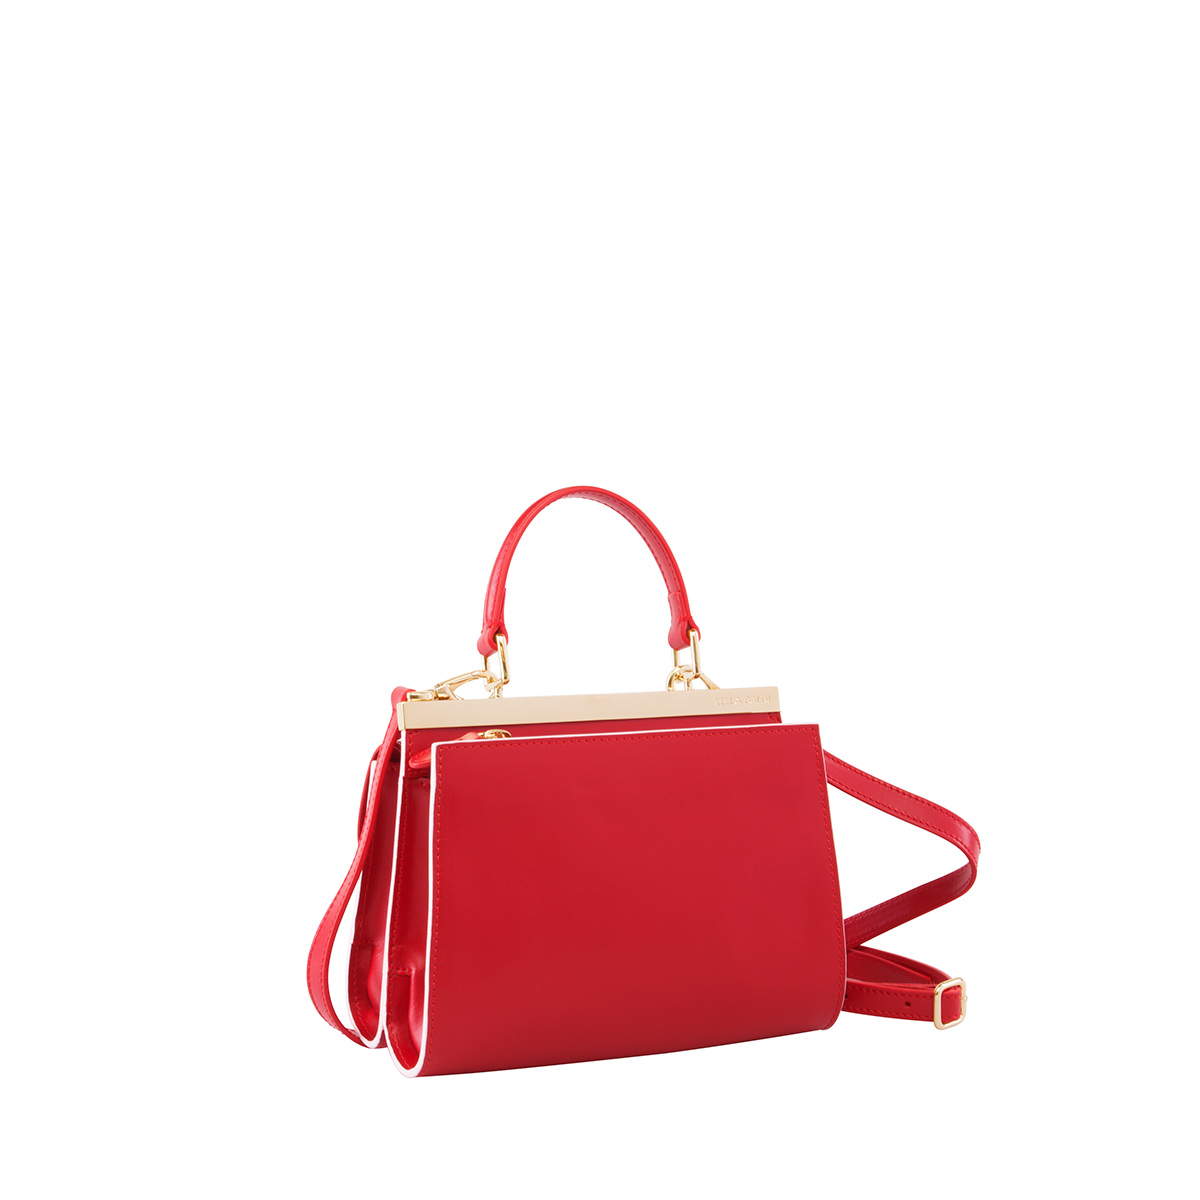 Wavy Bag Clutch, Red-White